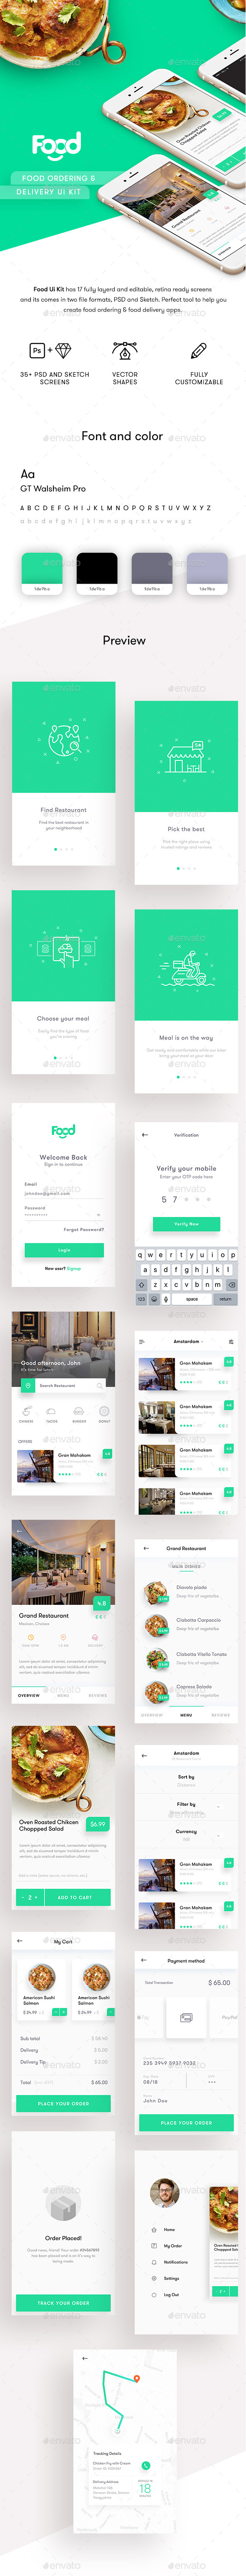 Android L Mobile UI Template (.sketch)